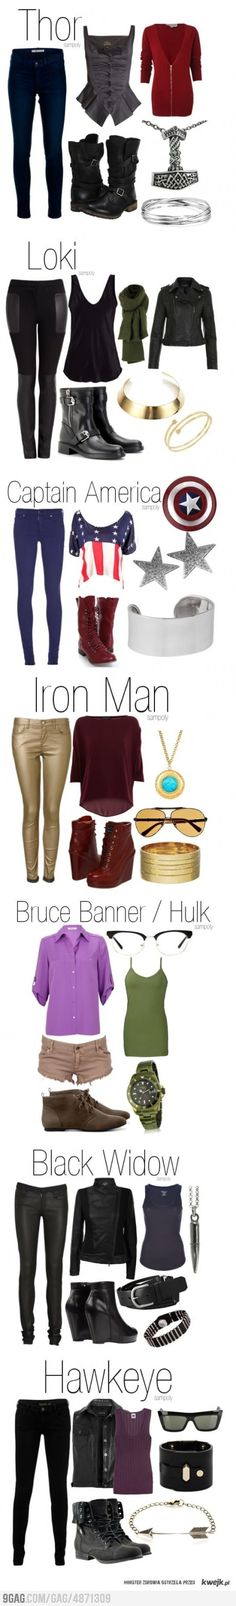 Avengers fashion. I want to wear Thor and Iron Man.